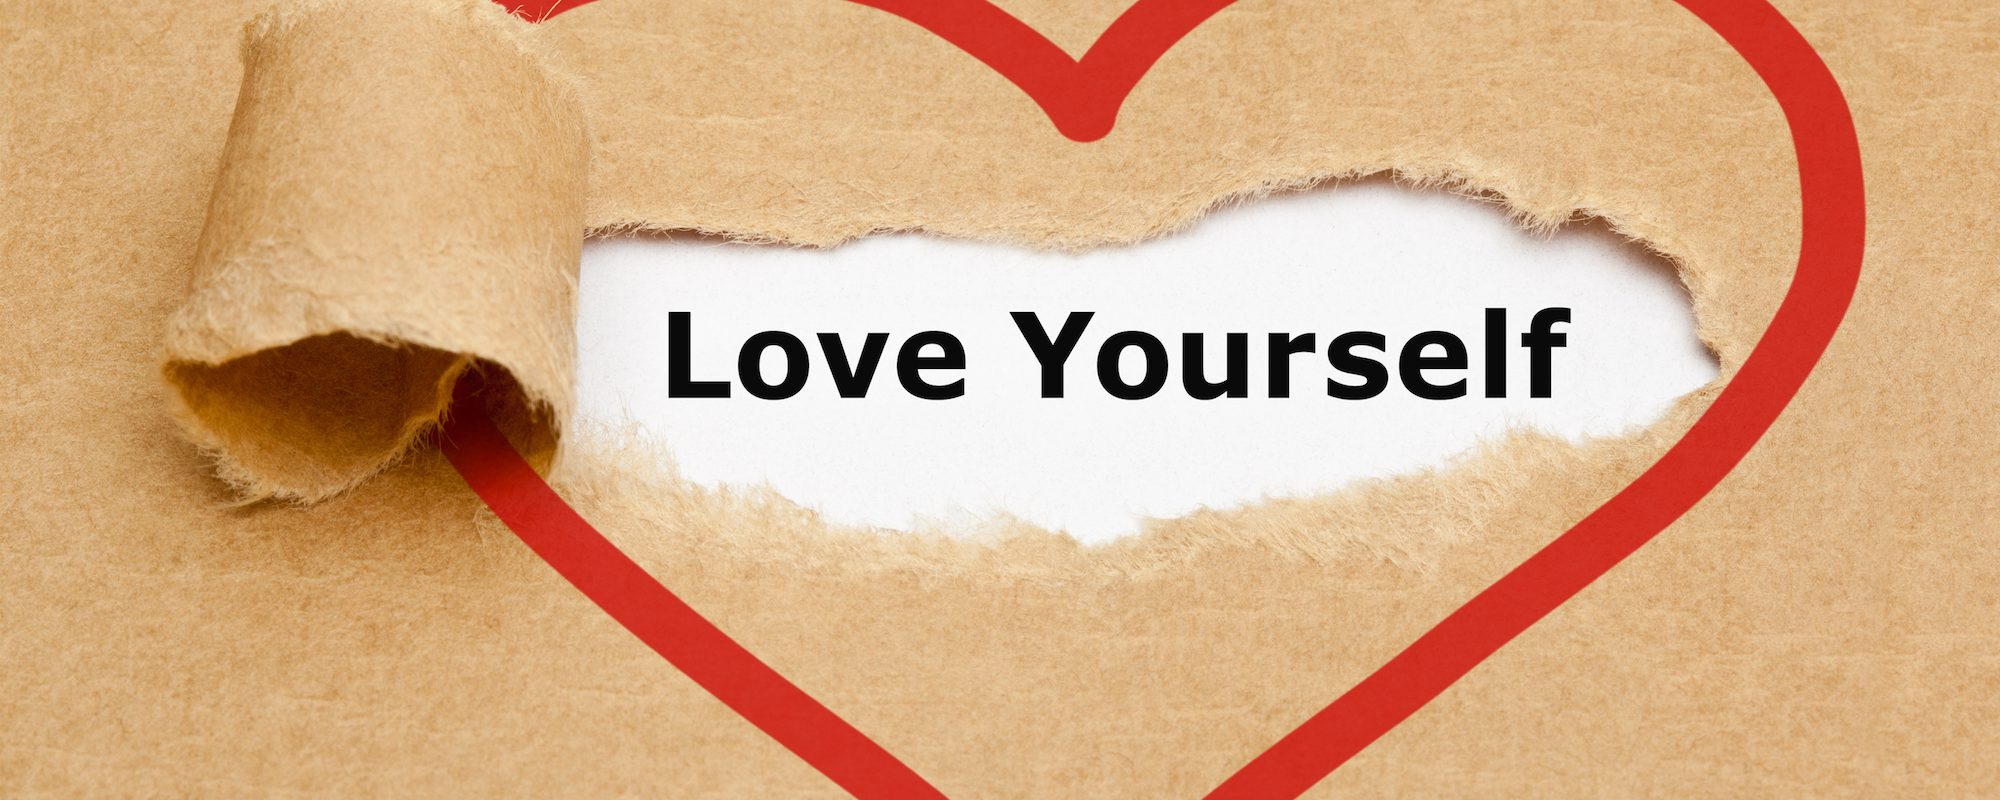 Learning to Love Ourselves